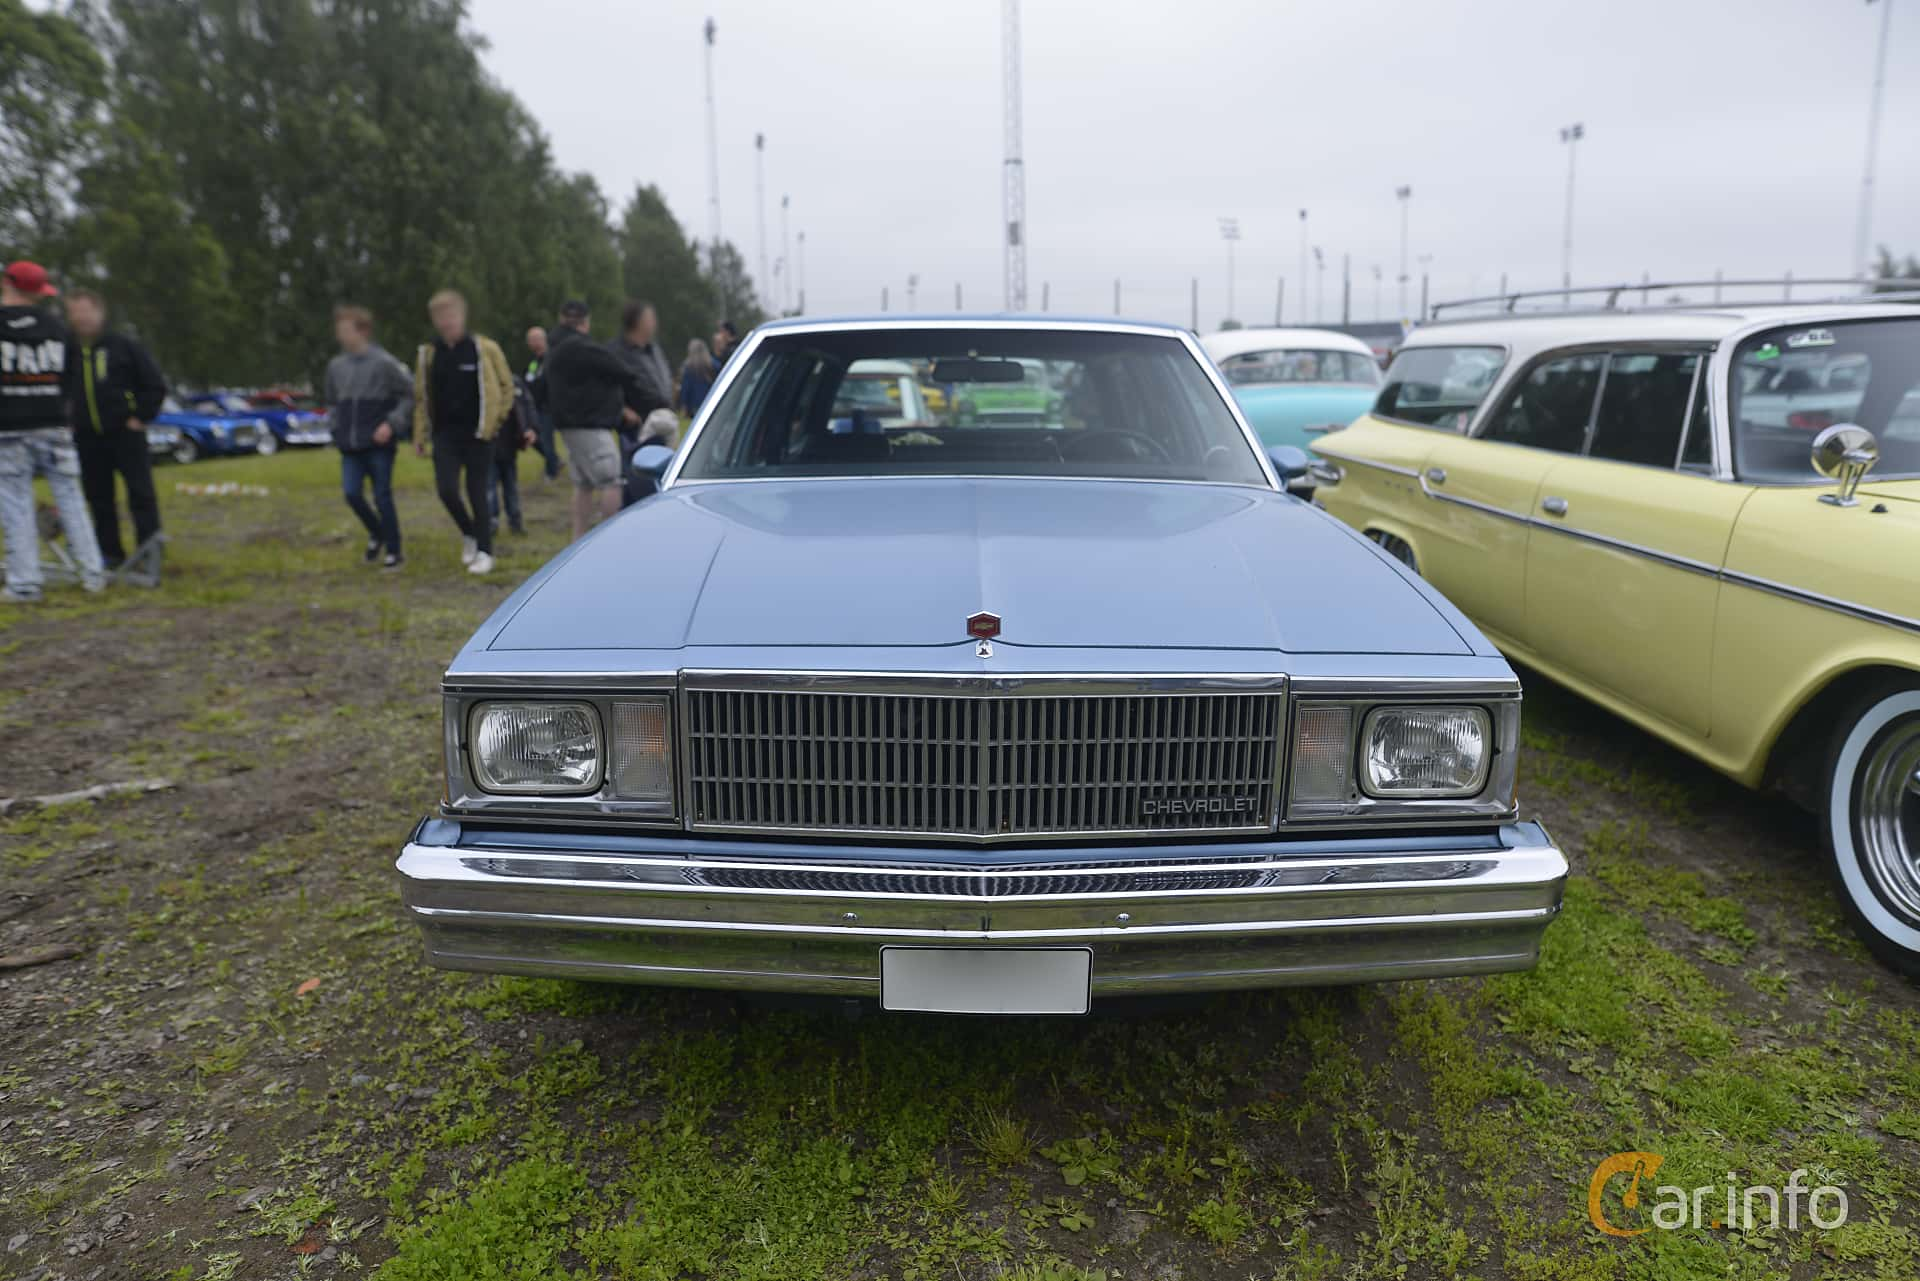 Chevrolet Malibu Station Wagon 3.8 V6 Automatic, 117hp, 1981 at Umeå Wheels Nations Norr 2016